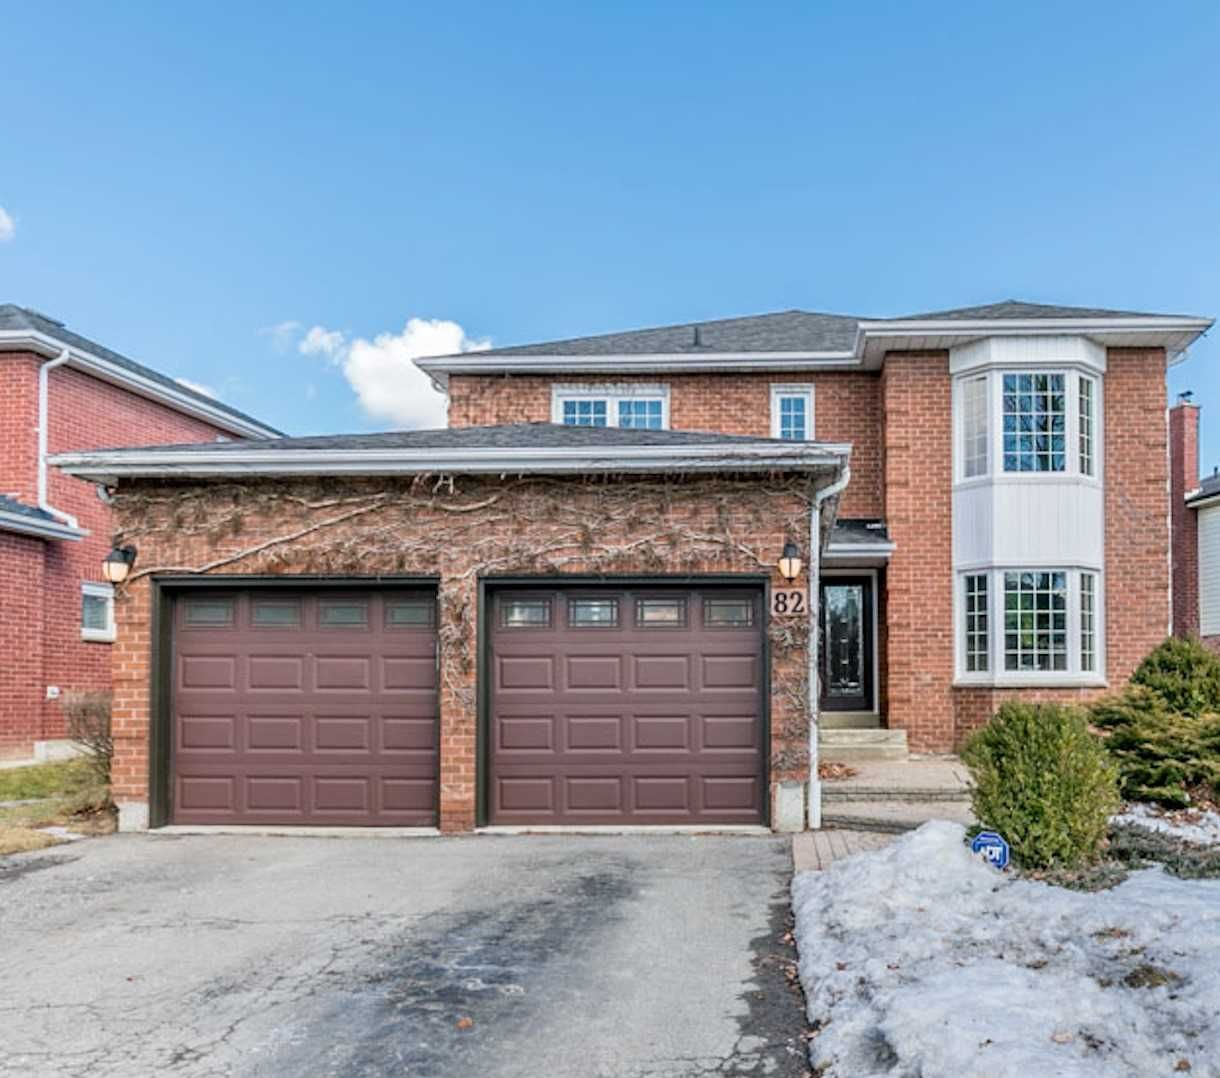 Main Photo: 82 Lipton Cres in Whitby: Freehold for sale : MLS®# E4402957